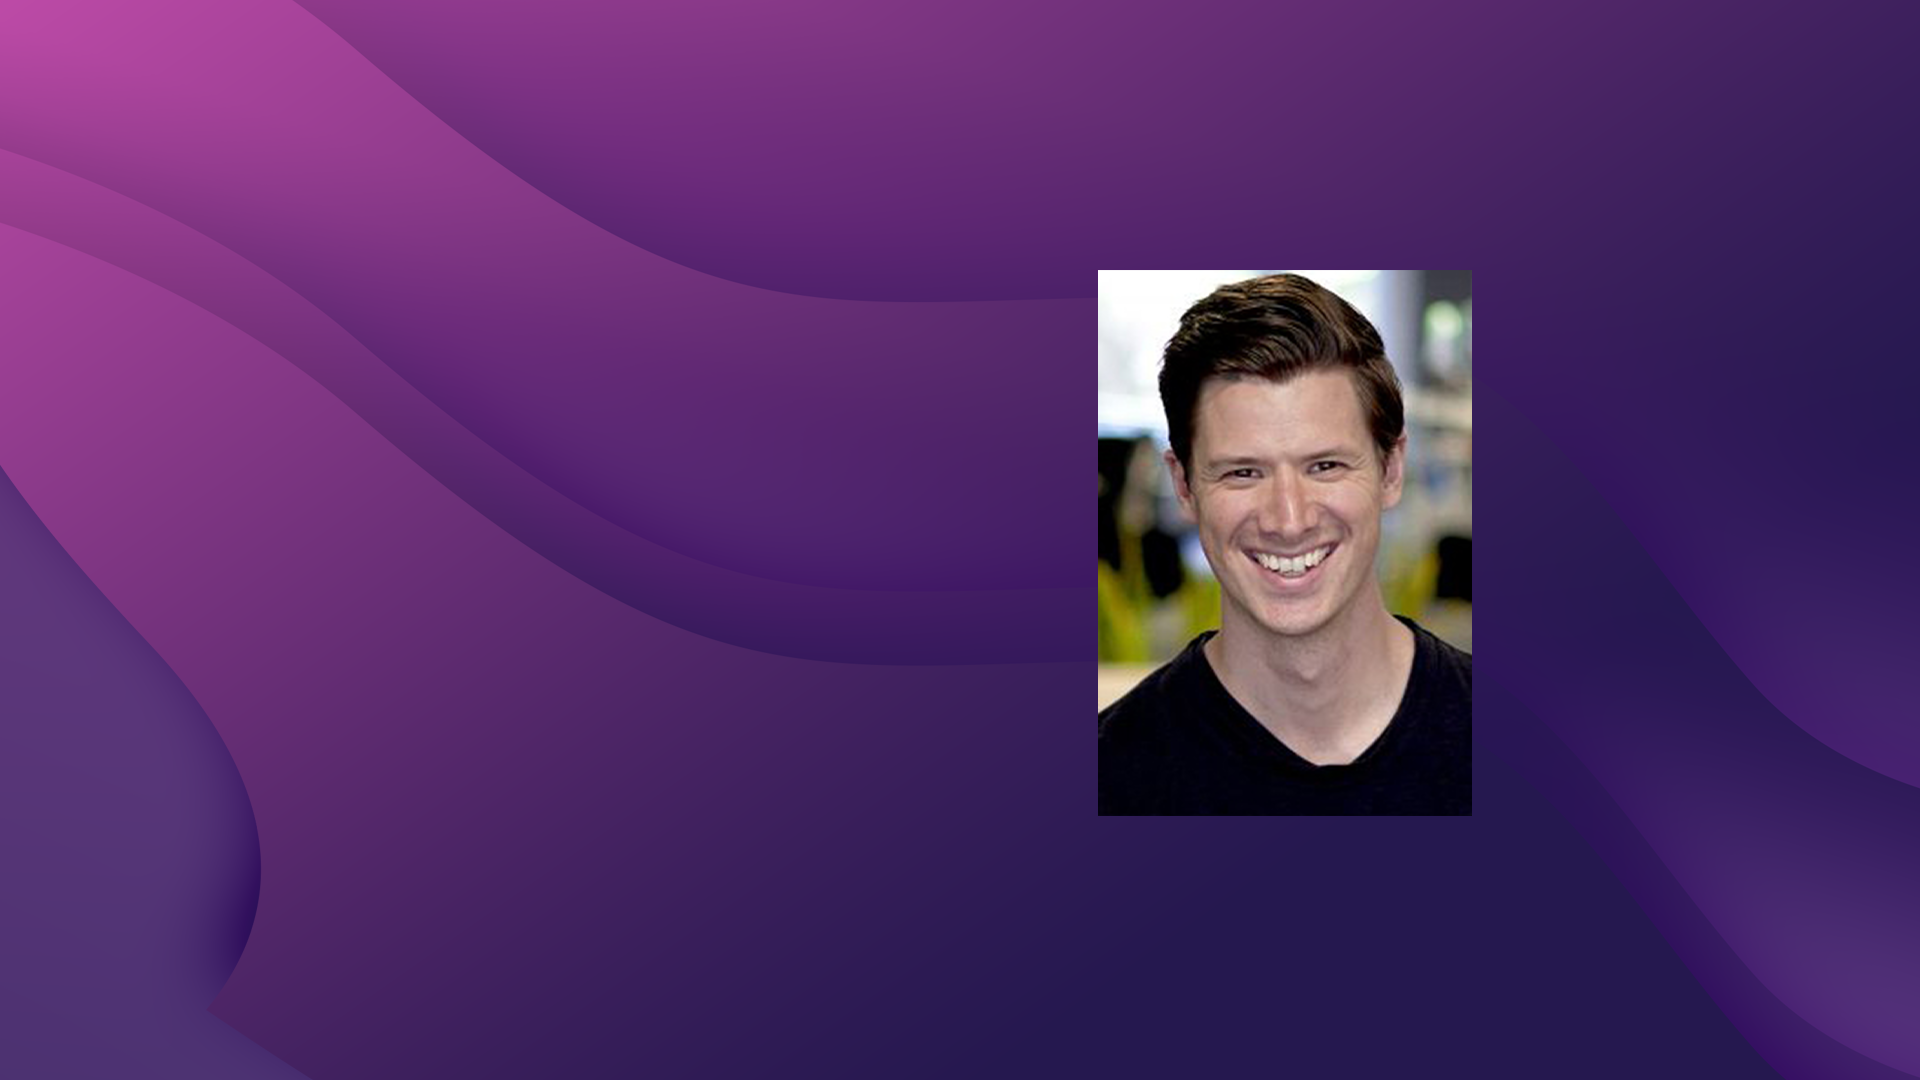 1547: The Tech Reimagining How Companies Use Their Spaces